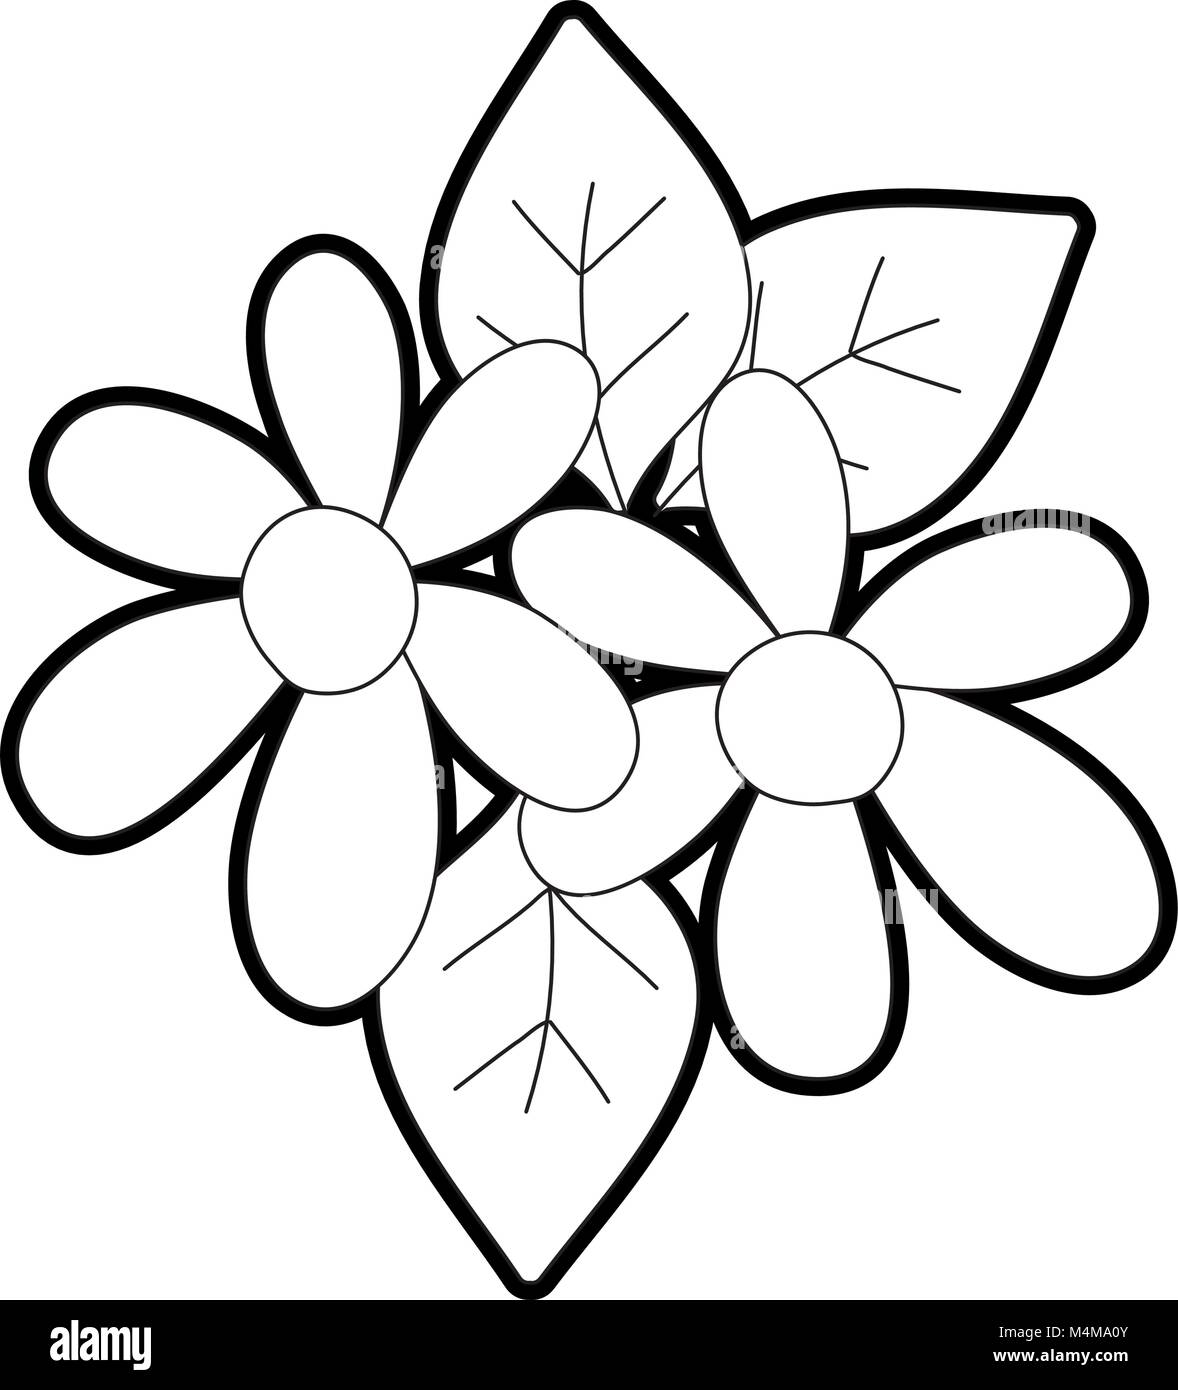 Outline beautiful flowers with petals and leaves decoration stock image